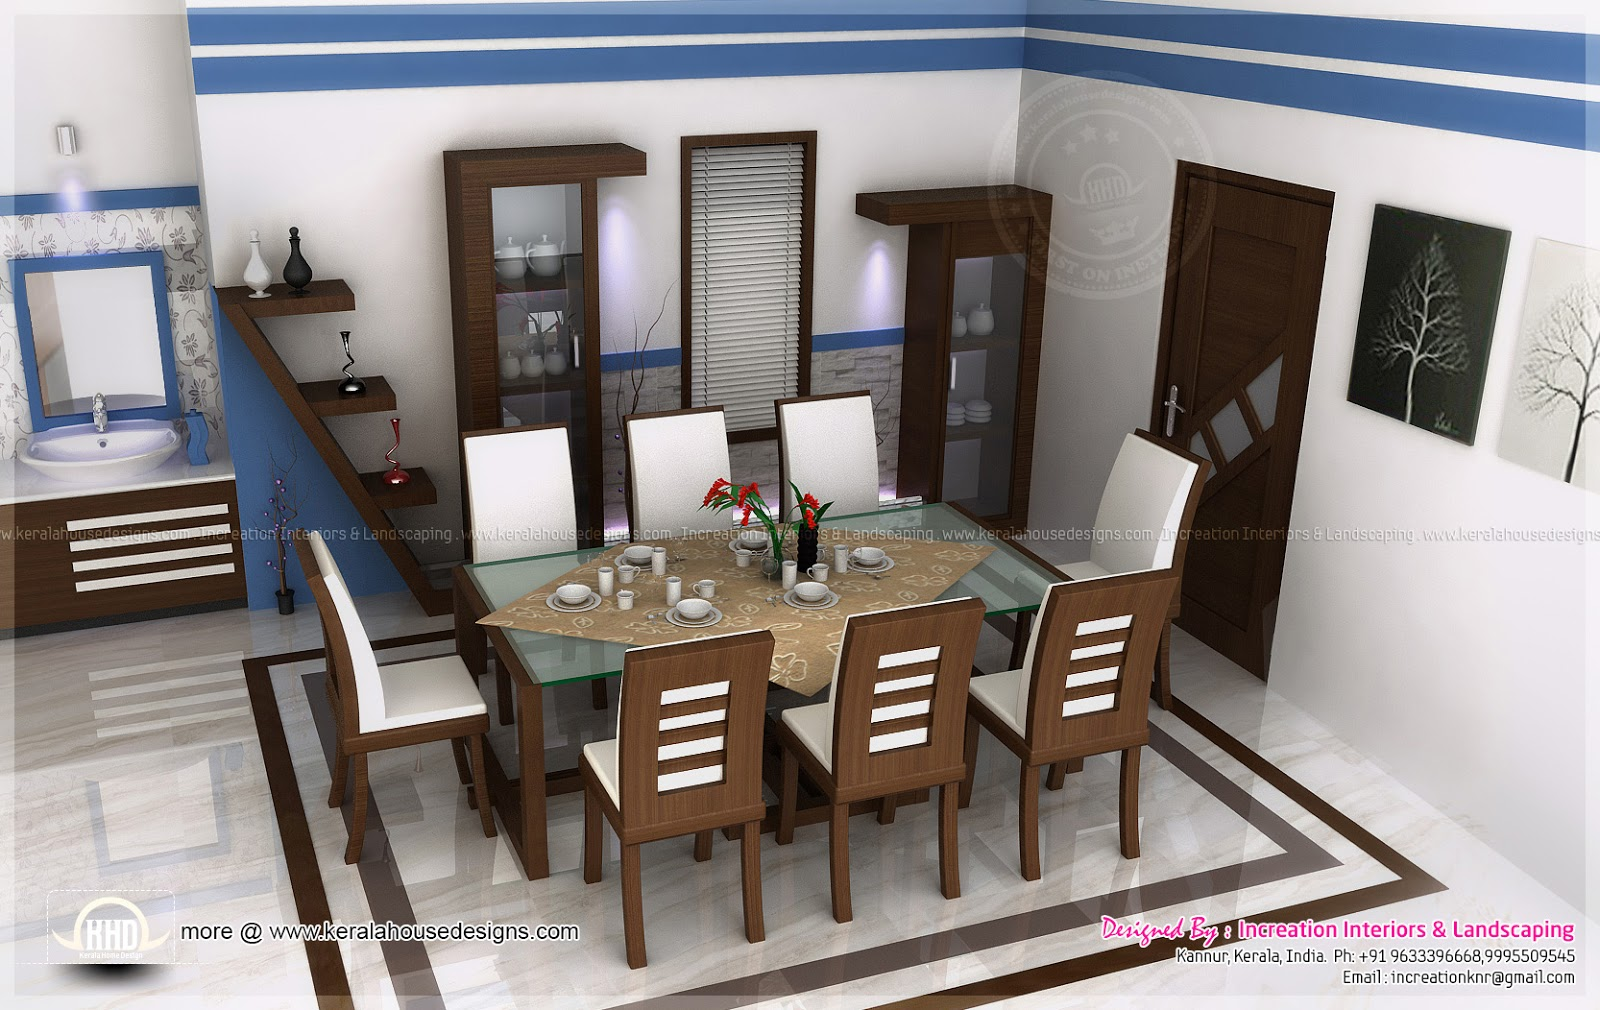 House interior ideas in 3d rendering kerala home design for Simple dining hall design